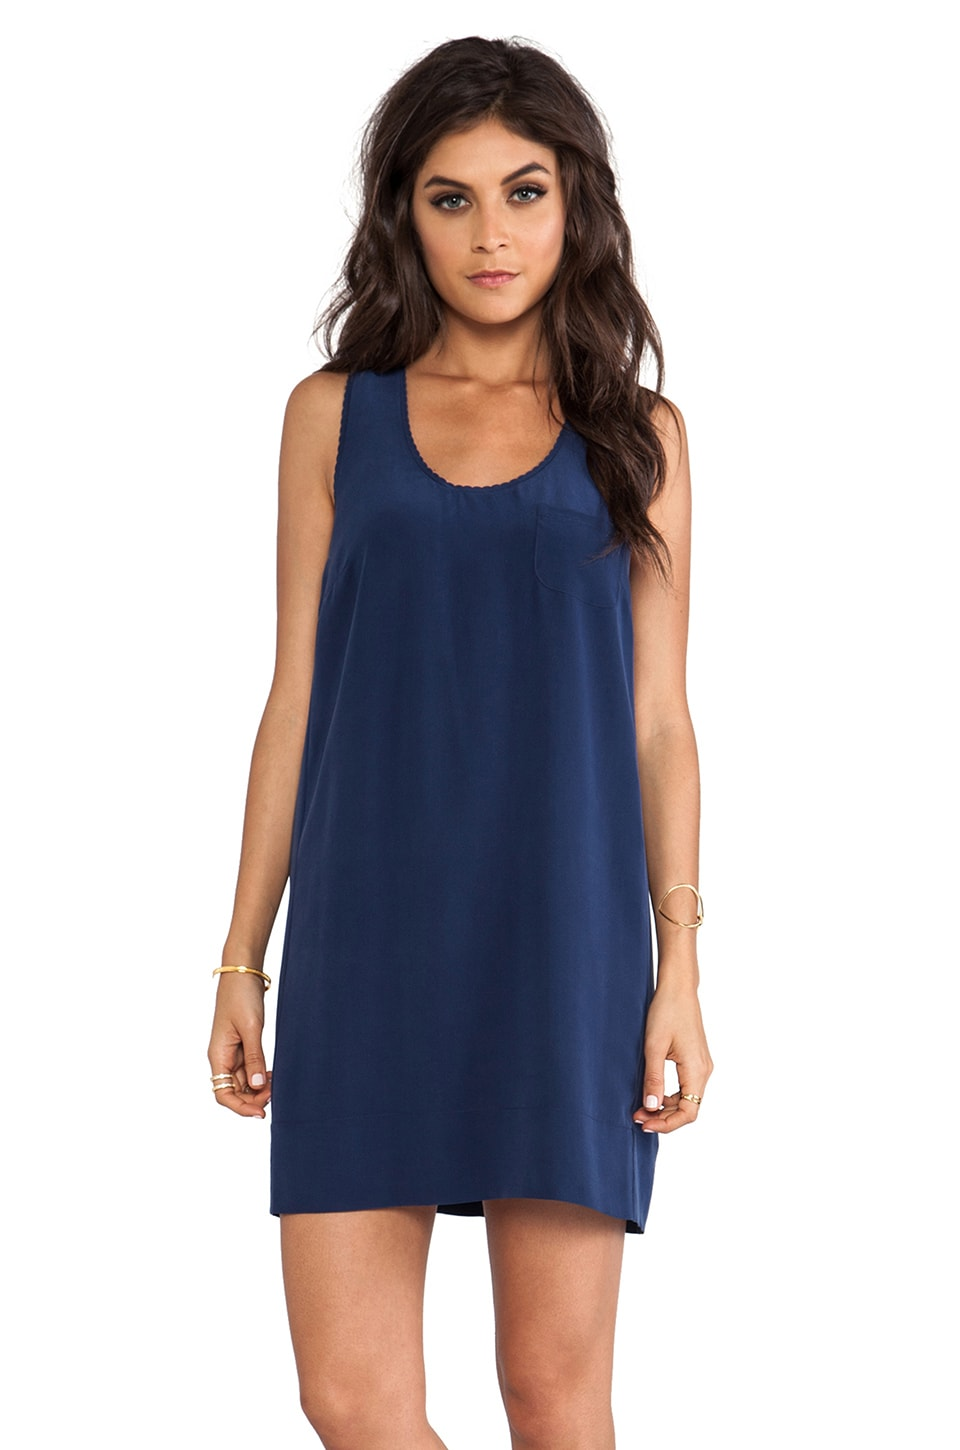 Joie Peri C Scalloped Edge Dress in Dark Navy